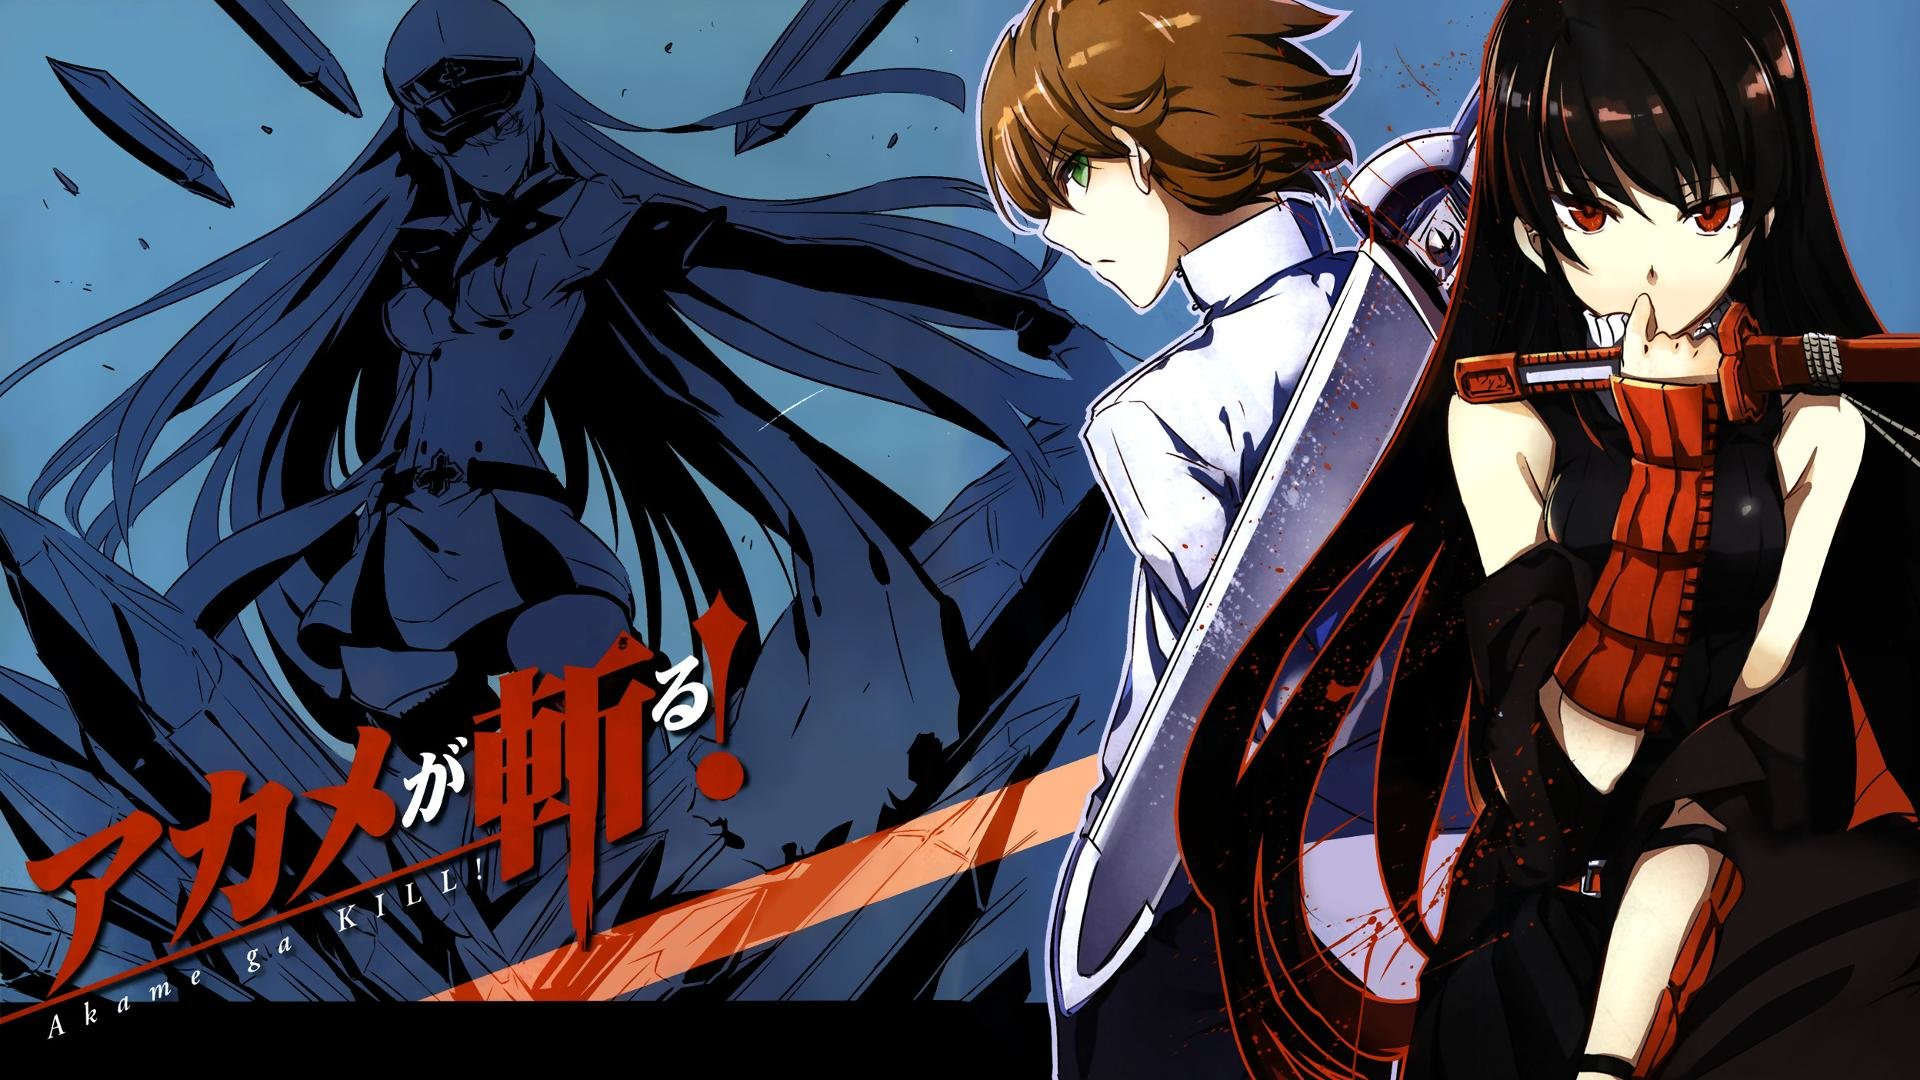 Download full hd 1080p Tatsumi (Akame Ga Kill!) PC background ID:208062 for free